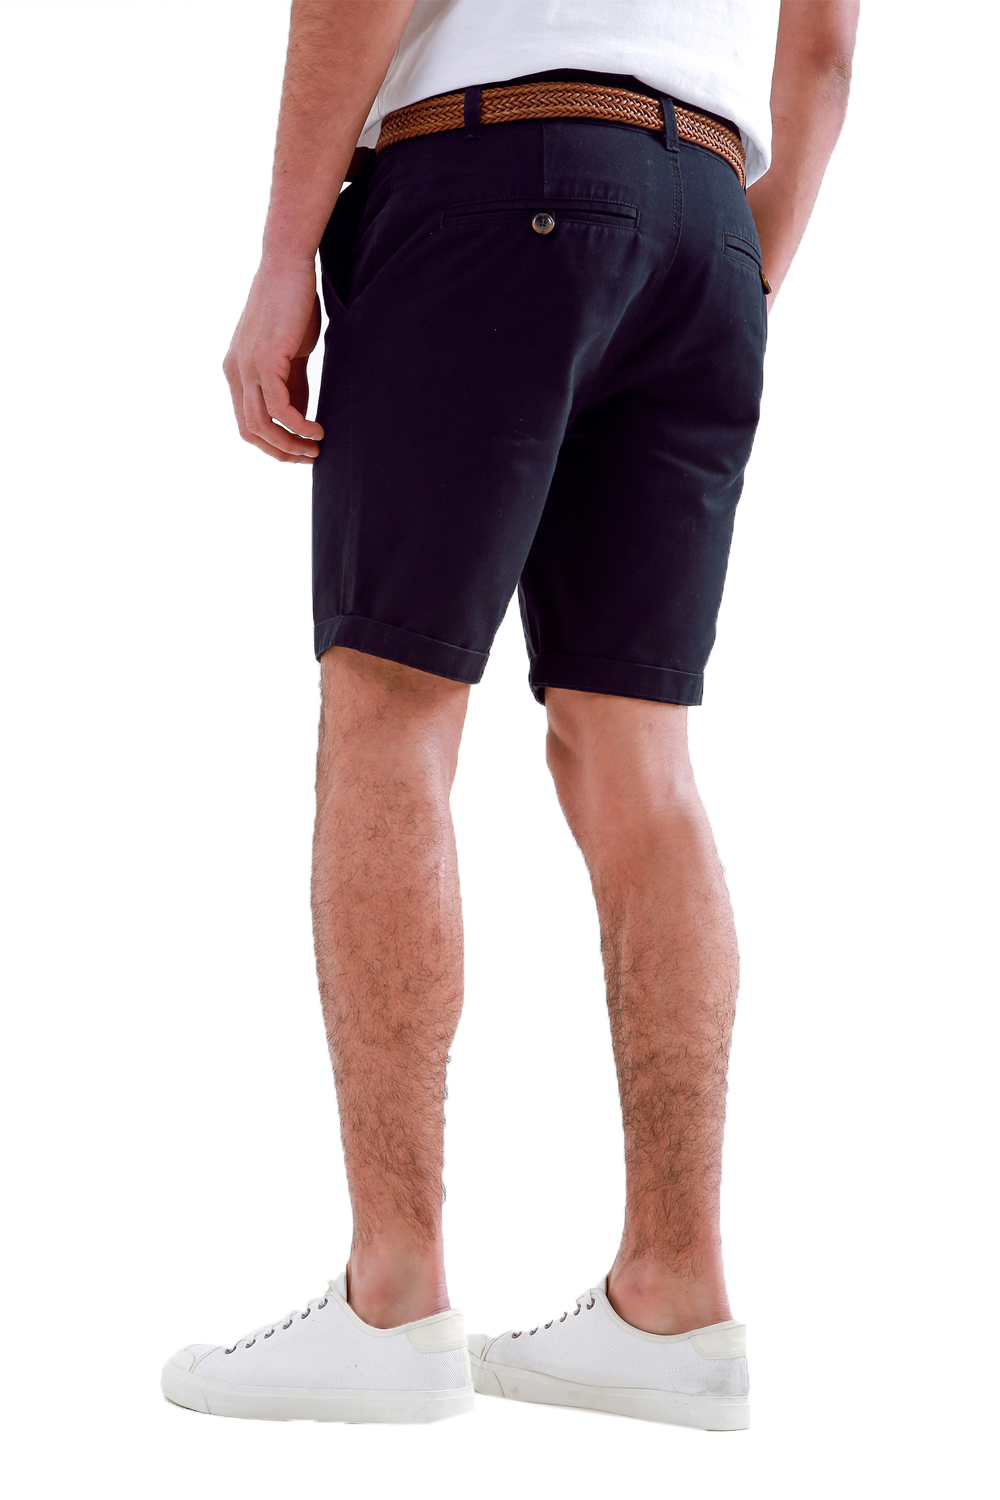 Threadbare-Mens-Slim-Fit-Belted-Chino-Shorts-Summer-Casual-Cotton-Smart-Bottoms thumbnail 7